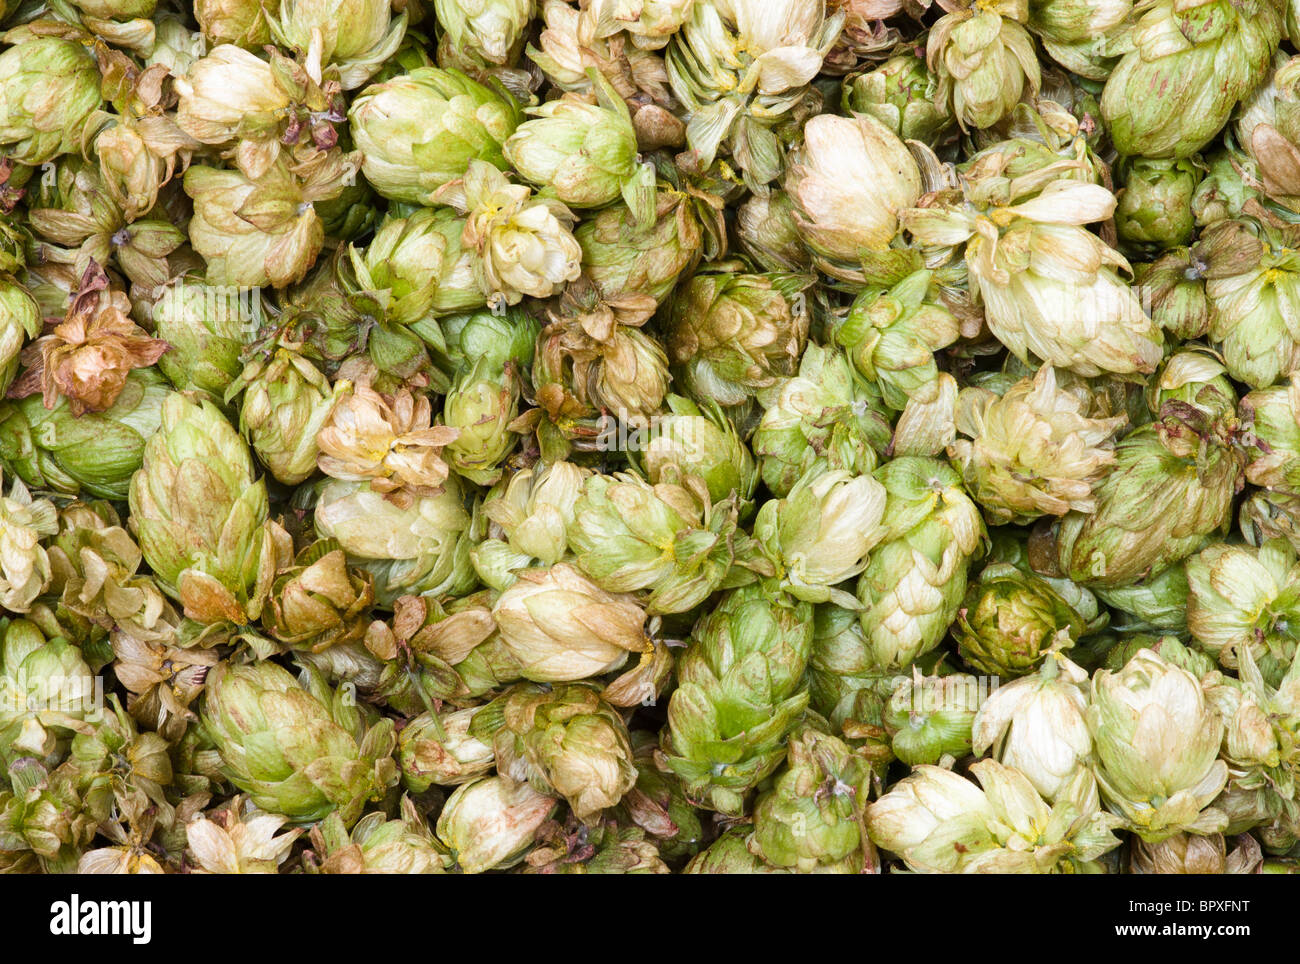 Close Up Image of Fresh Hops, Recently Harvested. - Stock Image